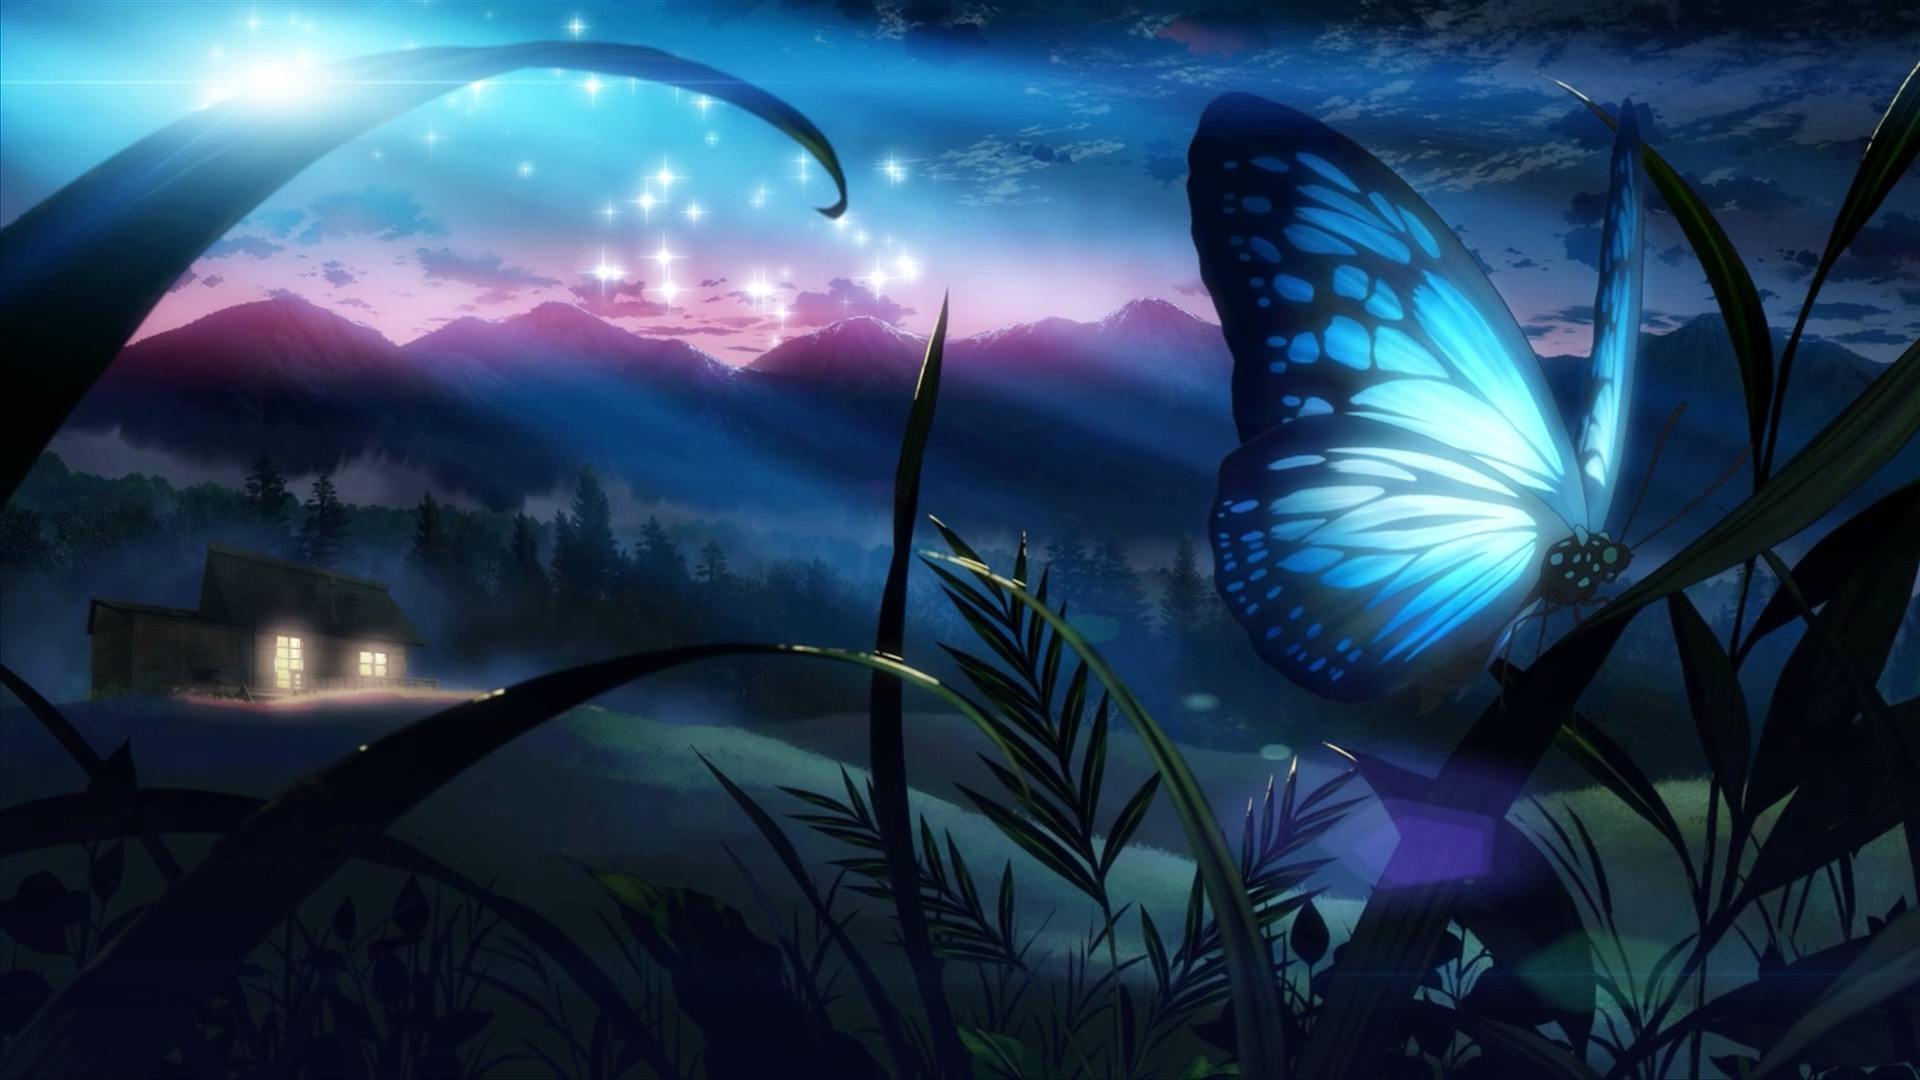 Pin by NikklaDesigns on Computer Wallpaper Hd anime